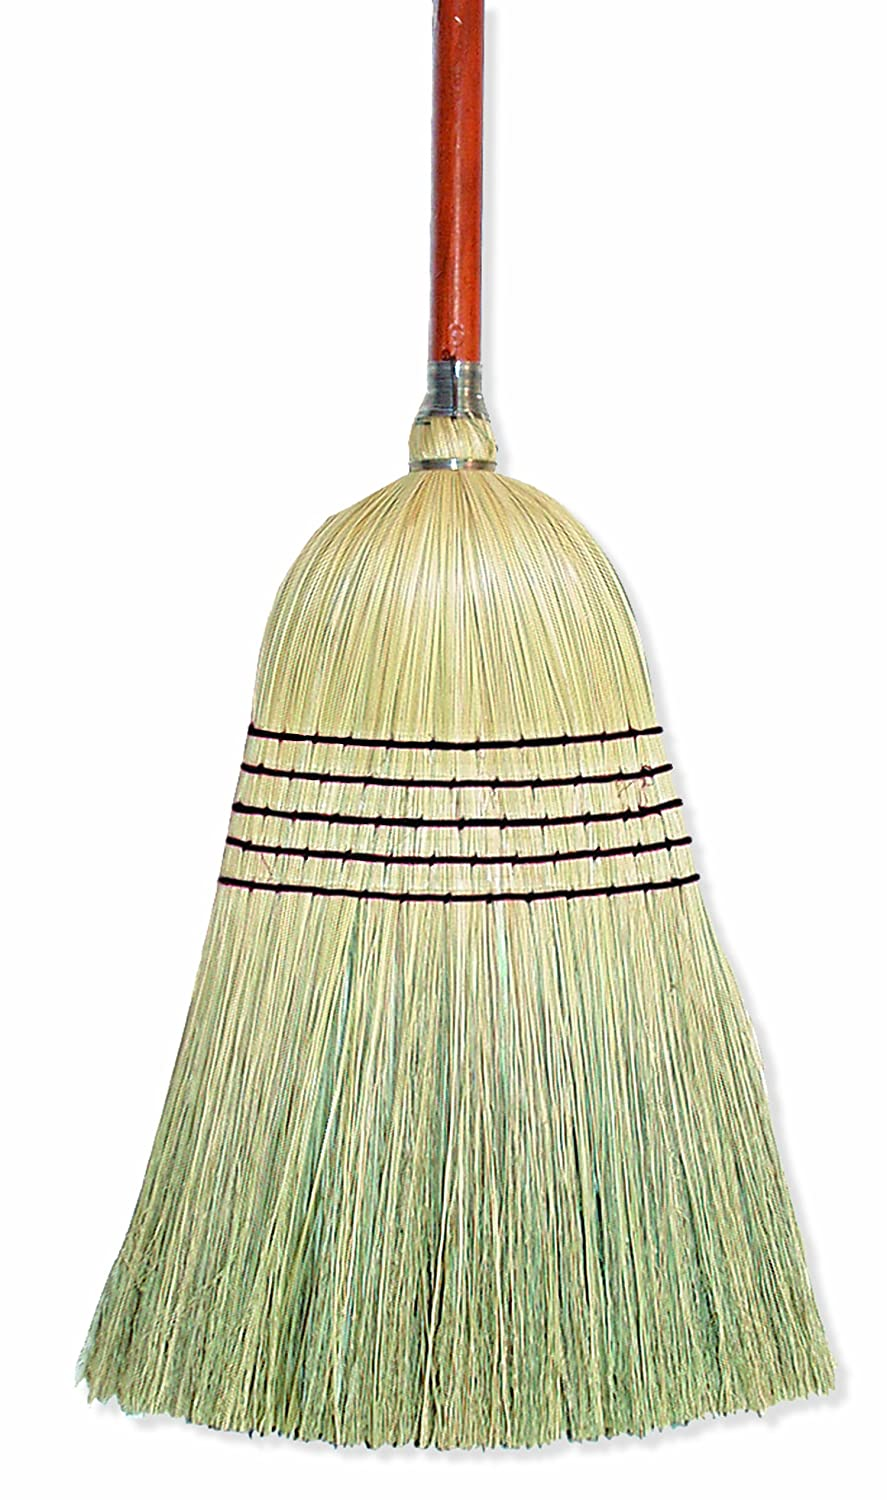 Wilen E502036, Warehouse Corn Blend Broom with 1-1/8 Handle, 32# Size, 56 Length (Case of 6) 56 Length (Case of 6)